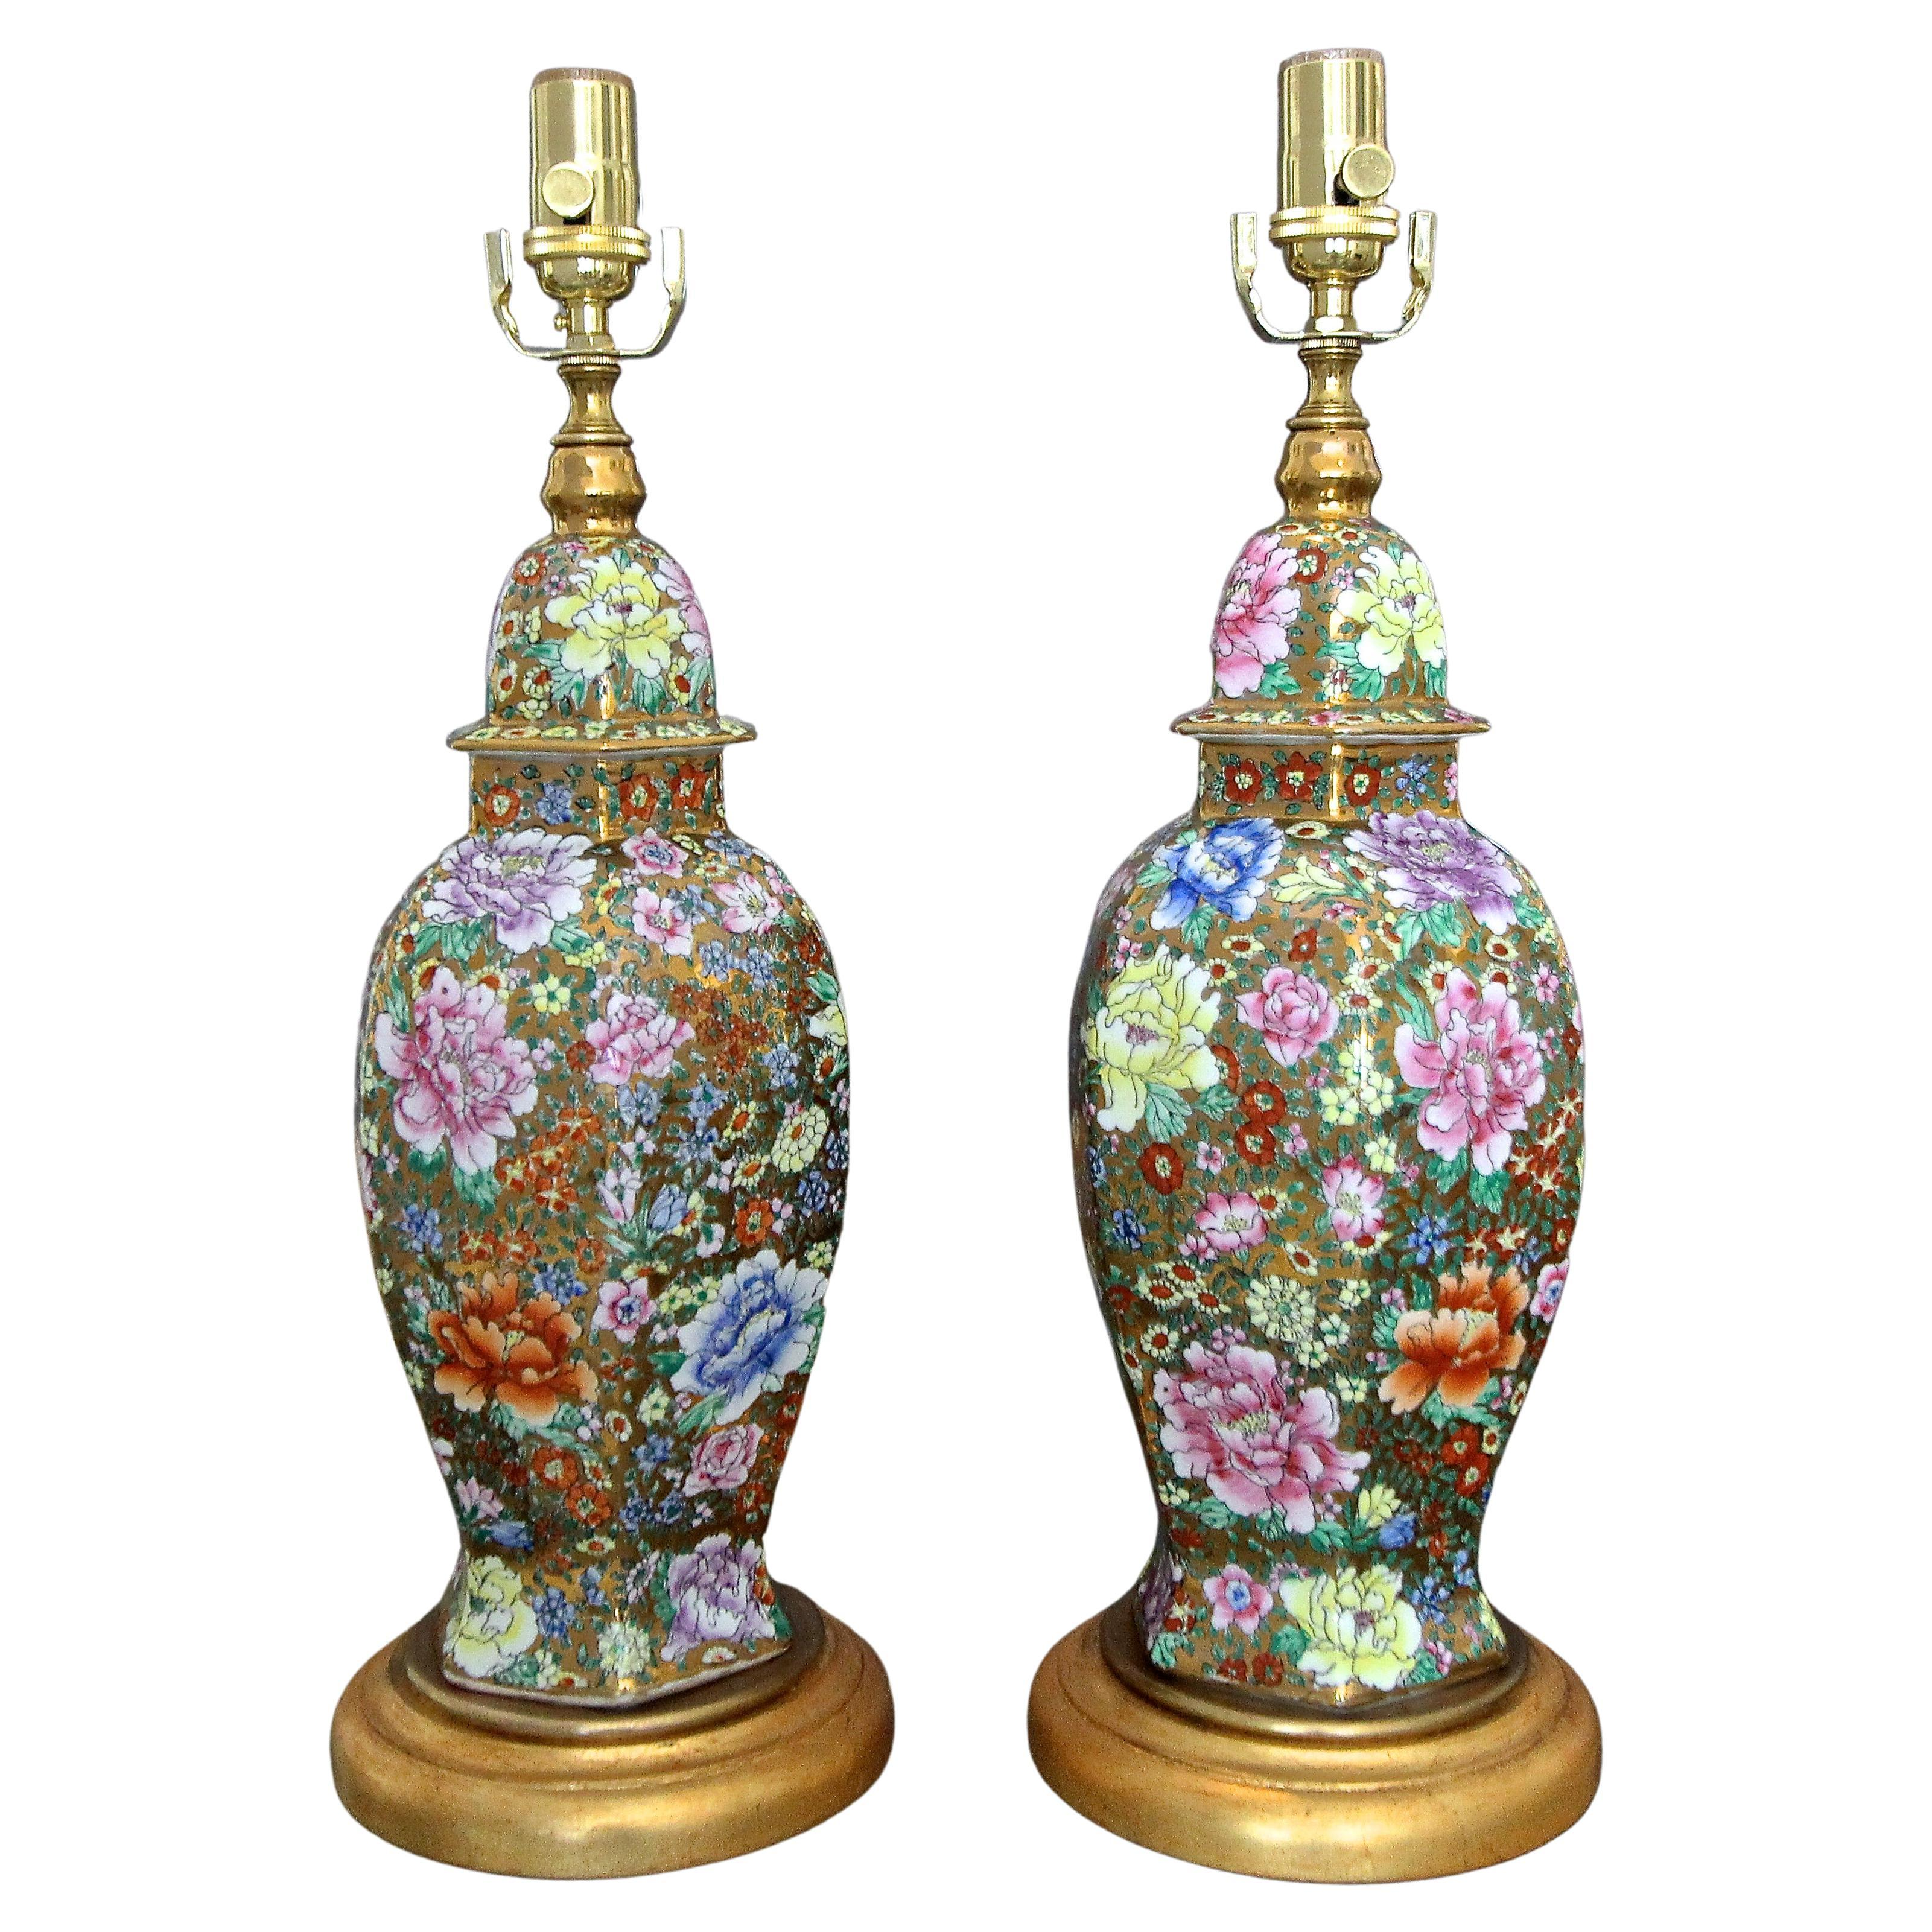 Pair of Chinese Famille Rose Millefleurs Porcelain Vase Table Lamps